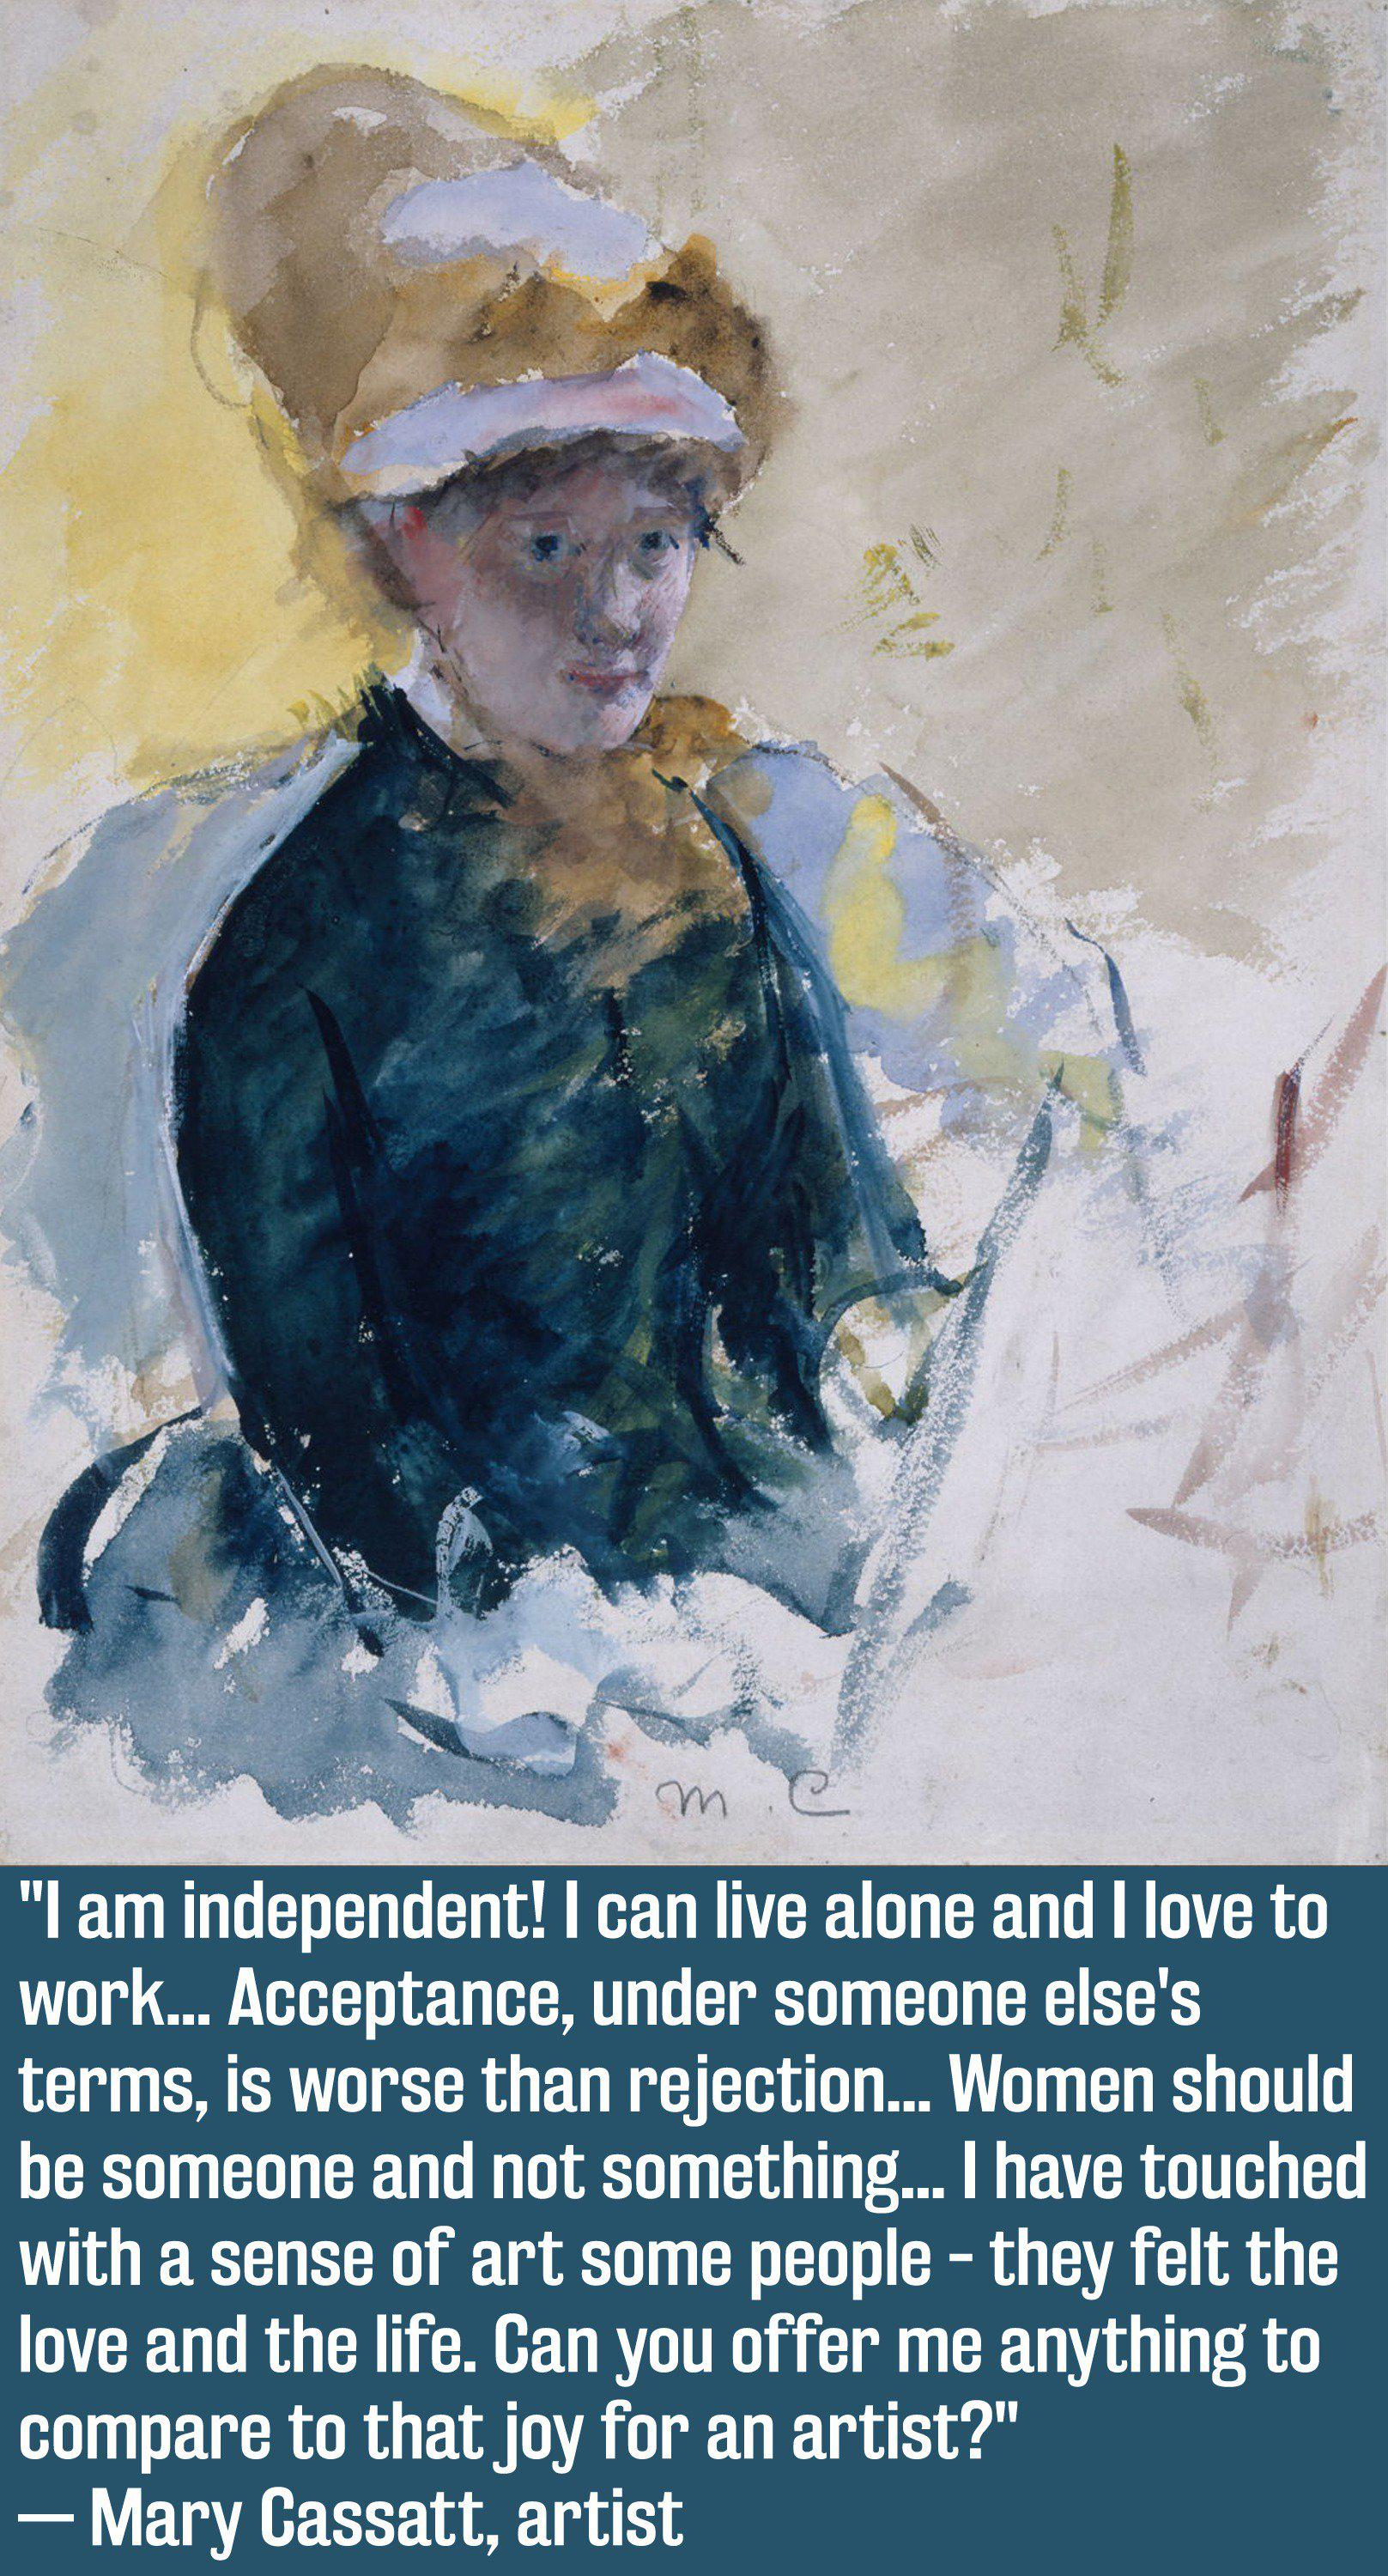 """I am independent! I can live alone and I love to work. Acceptance, under someone else's terms, is worse than rejection. Women should be someone and not something. I have touched with a sense of art some people… Can you offer me anything to compare?"" — Mary Cassatt, artist (1617 x 3000)"